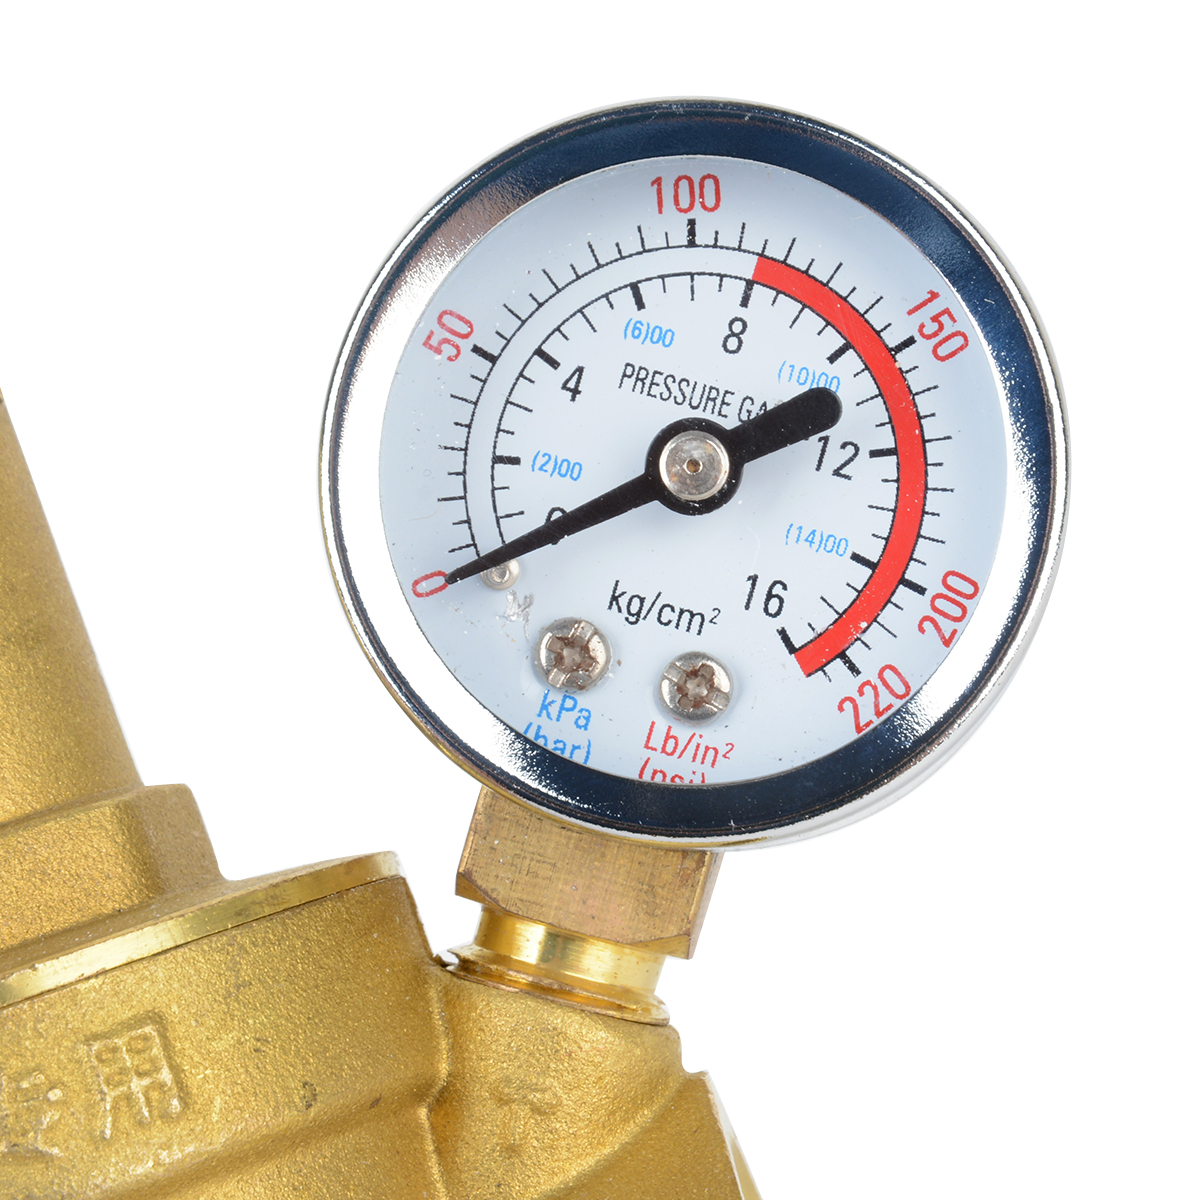 "Adjustable DN15 NPT Water Reducing Valve 1/2"" Brass Pressure Gauge Regulator Valves With Gauge Meter"